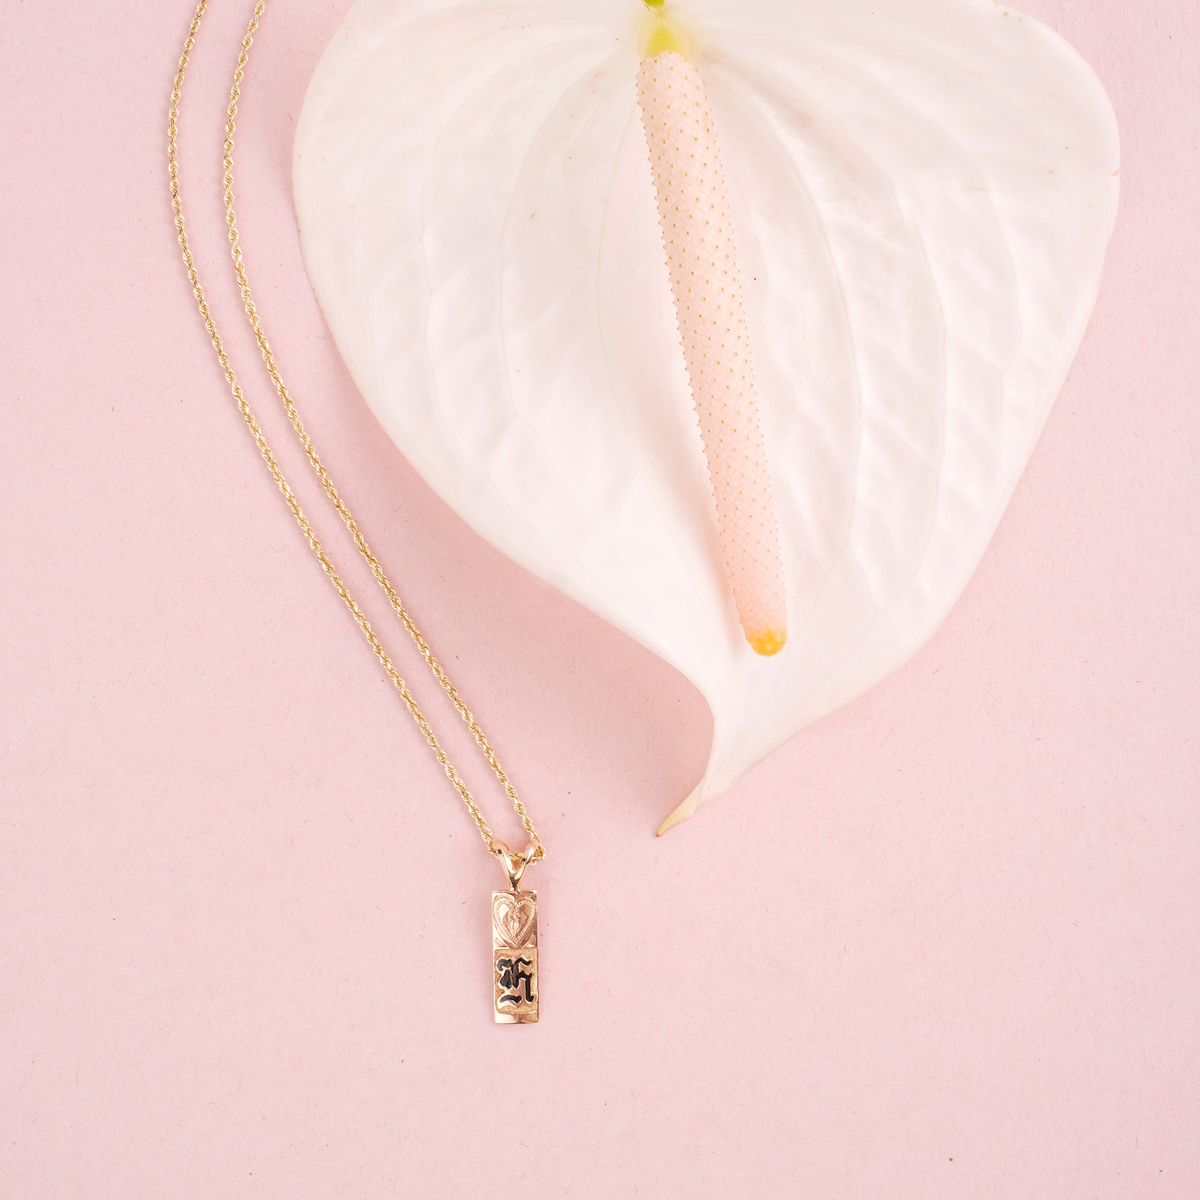 Paradise Collection 14k Gold Initial Pendant